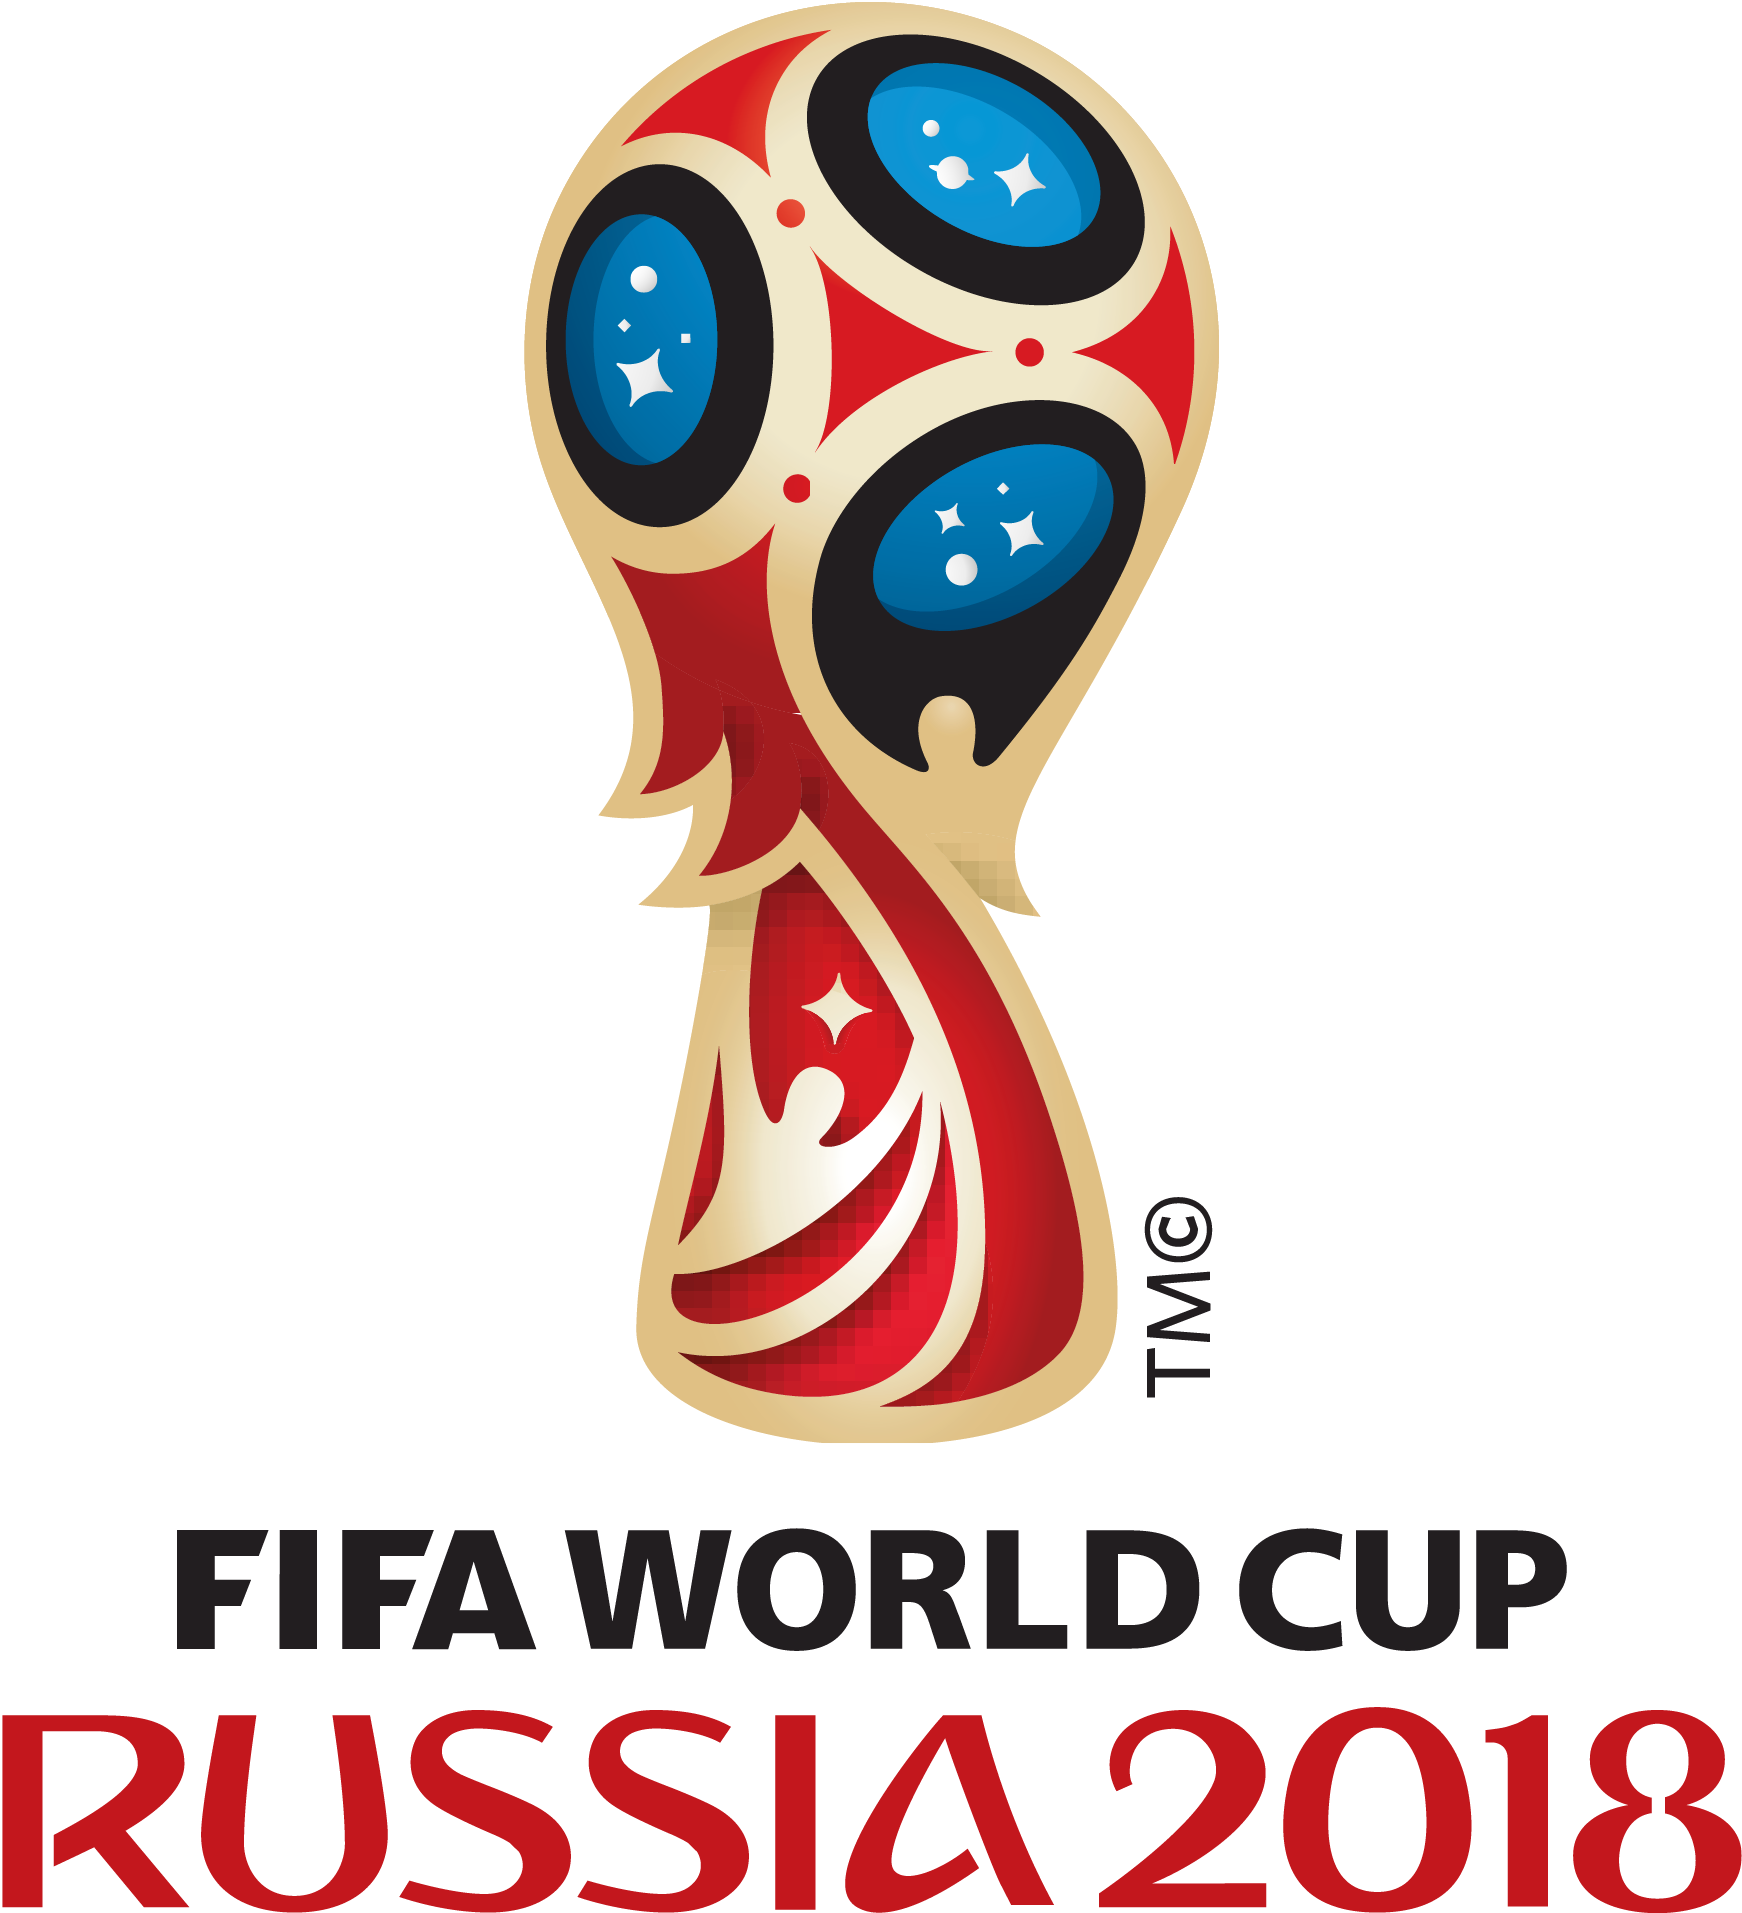 fifa world cup. Fight clipart odious